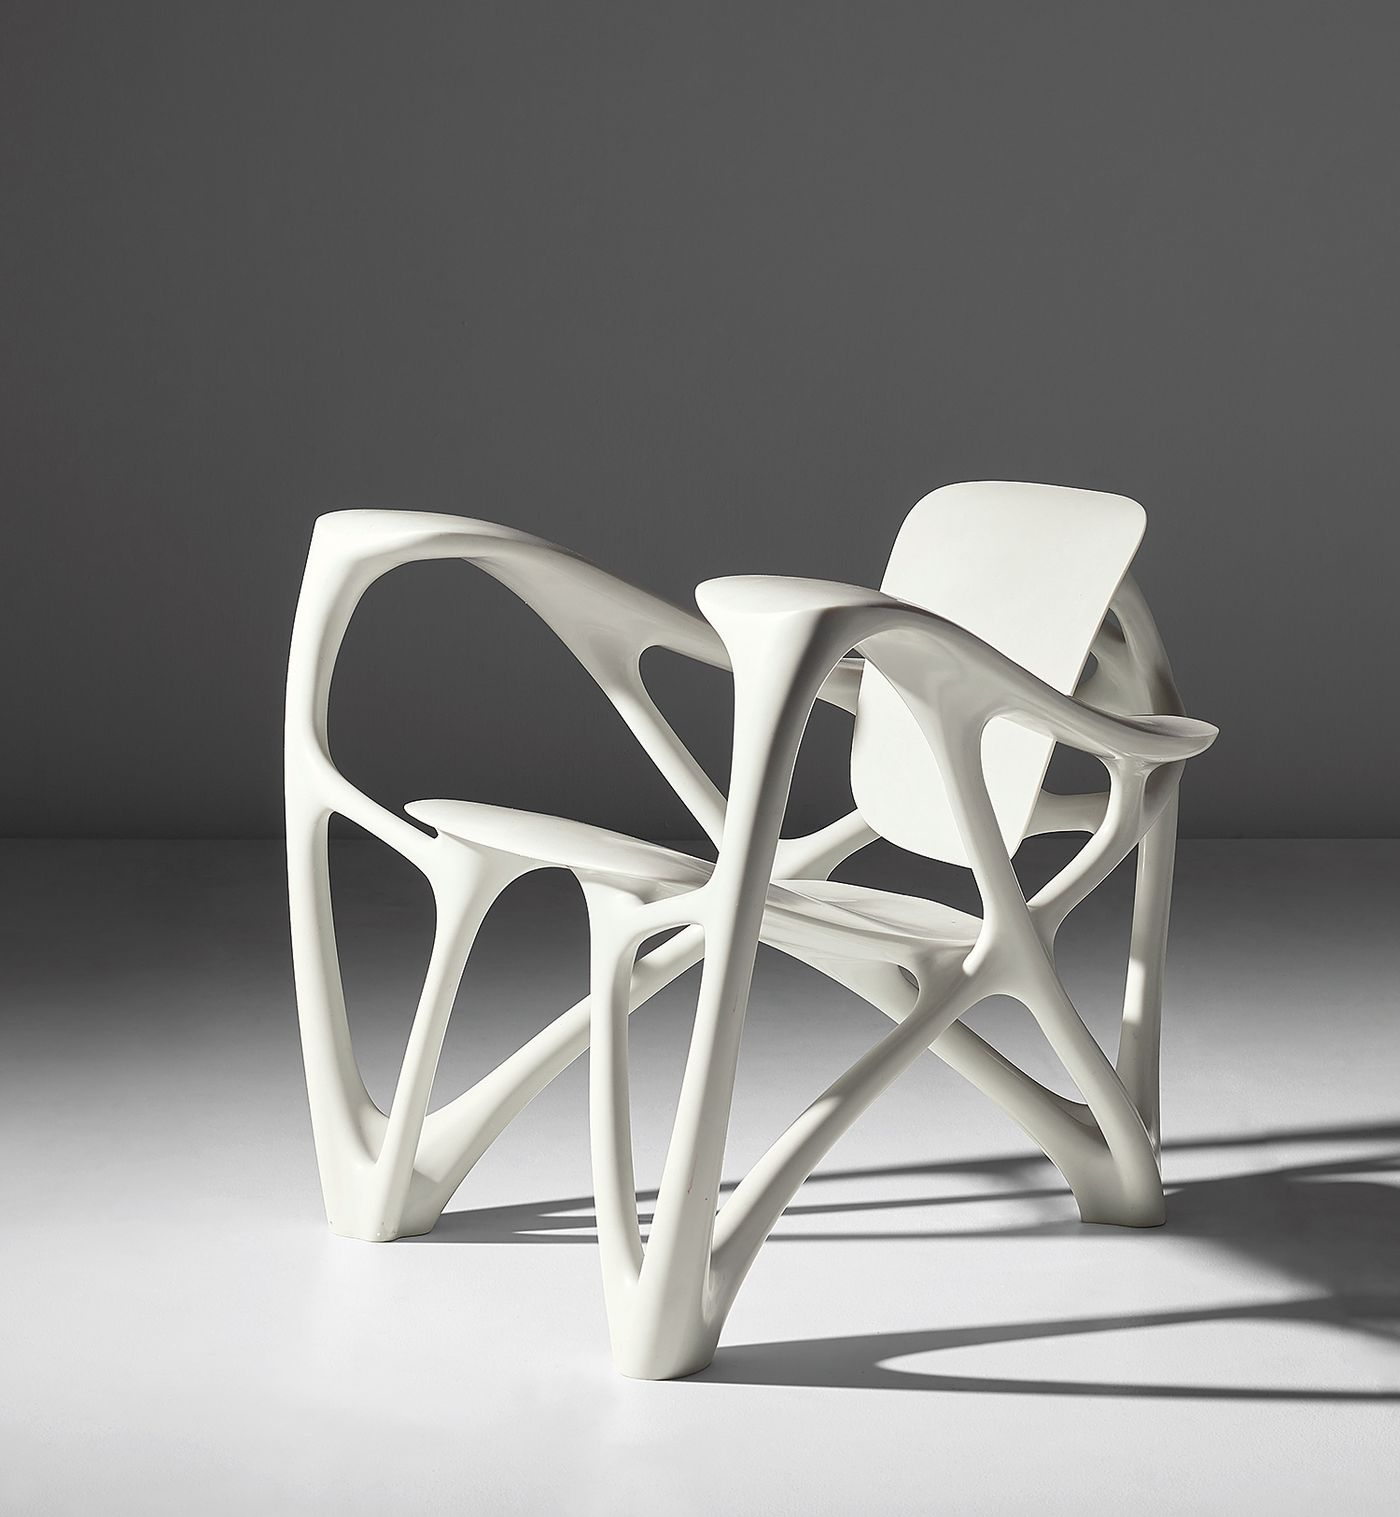 Laarman's innovative chair design explores the intersections of design, technology and science.